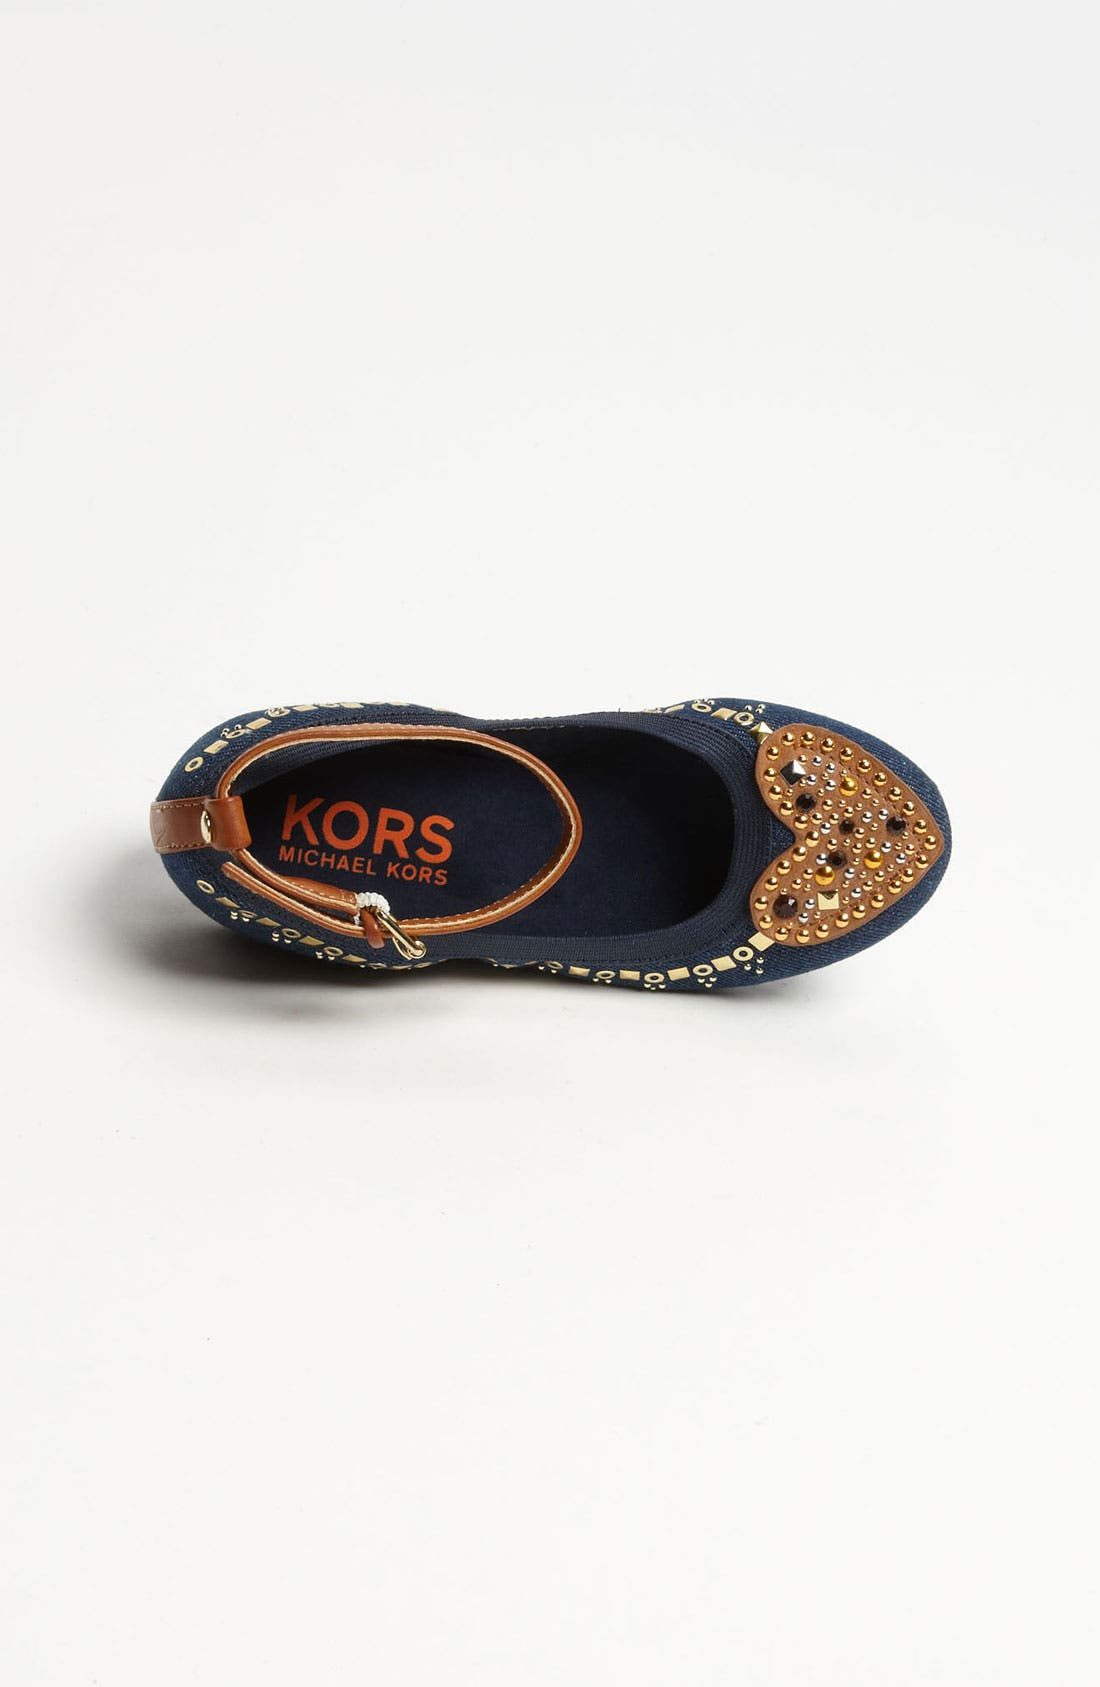 Alternate Image 3  - KORS Michael Kors 'Lichen' Flat (Little Kid & Big Kid)